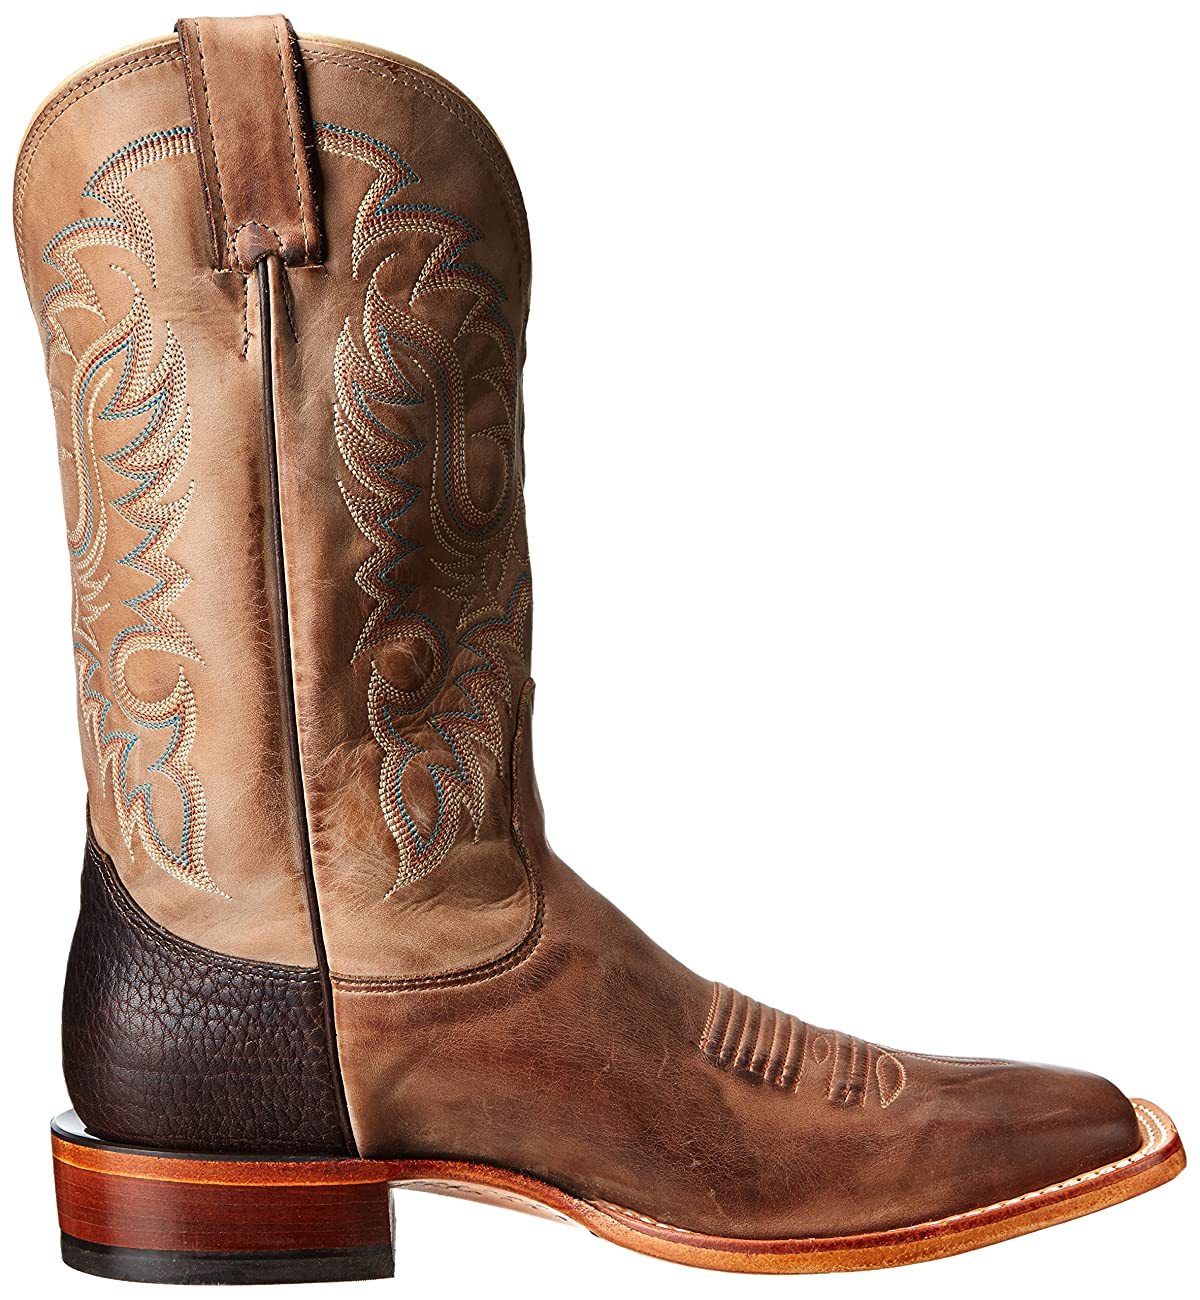 Nocona Boots Men's Vintage Cow MD2731 Western Boot 5